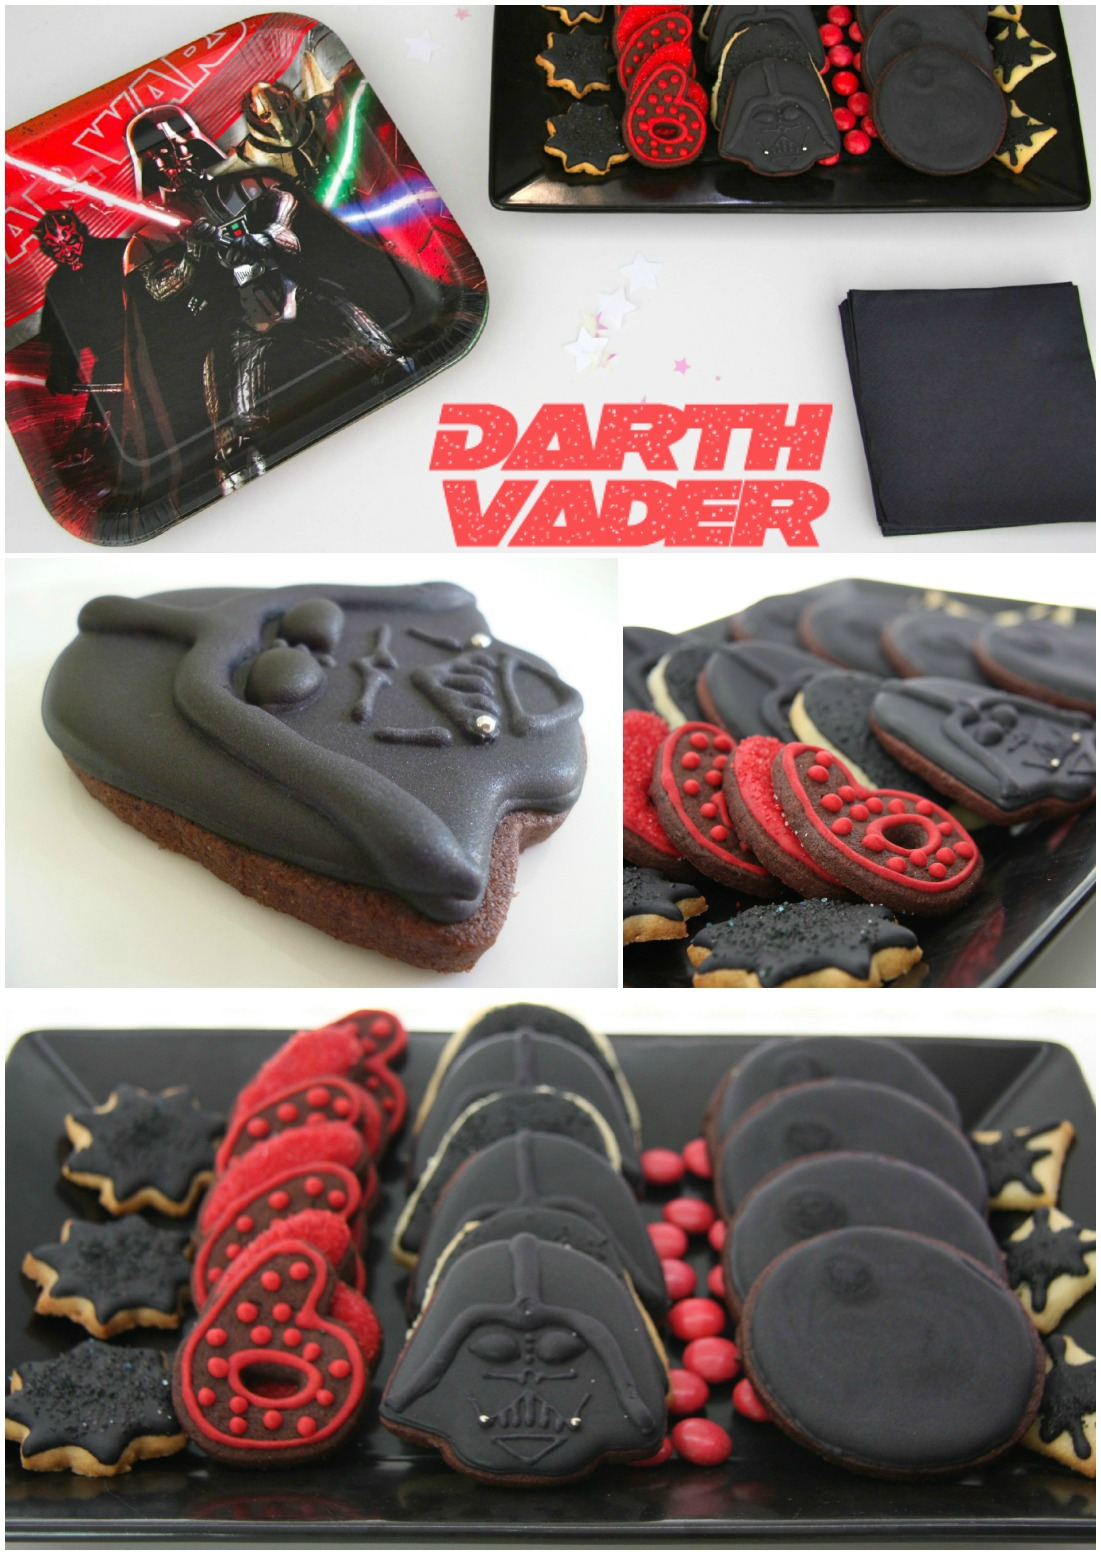 Star Wars themed Kids birthday party Darth Vader cookies kekse Kindergeburtstag